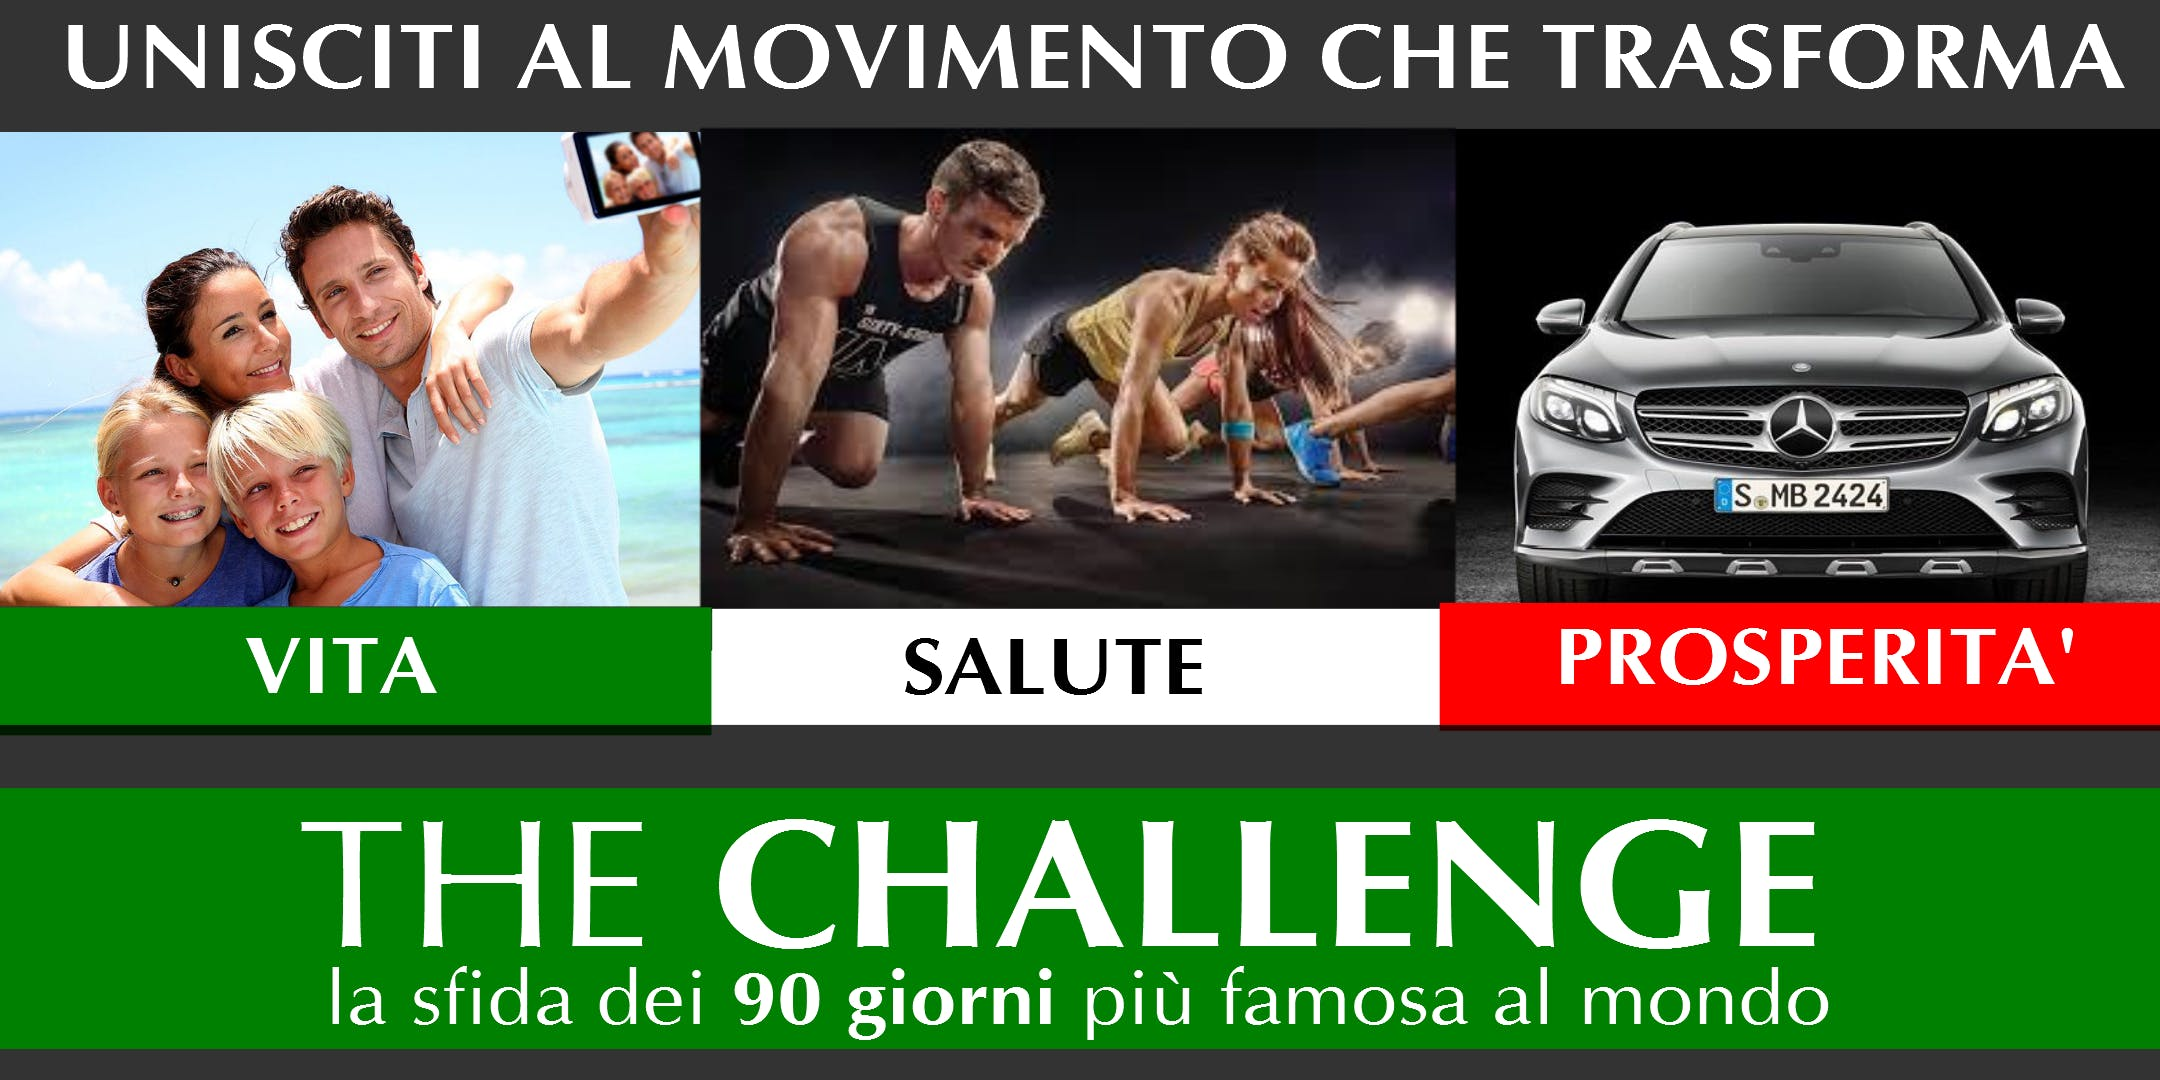 TheCHALLENGE (TO) 20/08